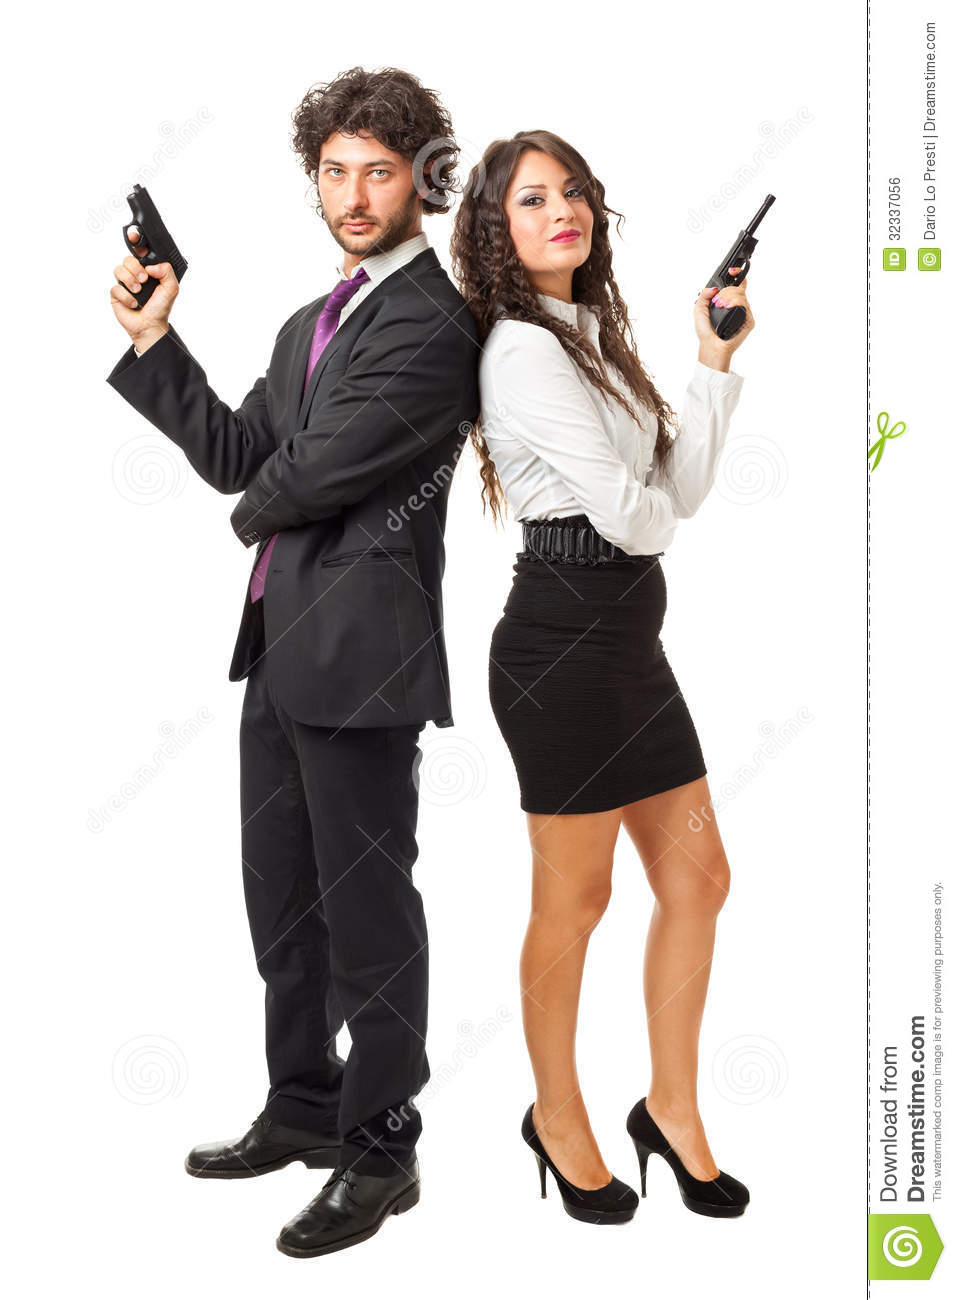 Danger Girl Wallpapers Free James Bond And His Girlfriend Stock Photo Image Of Guard